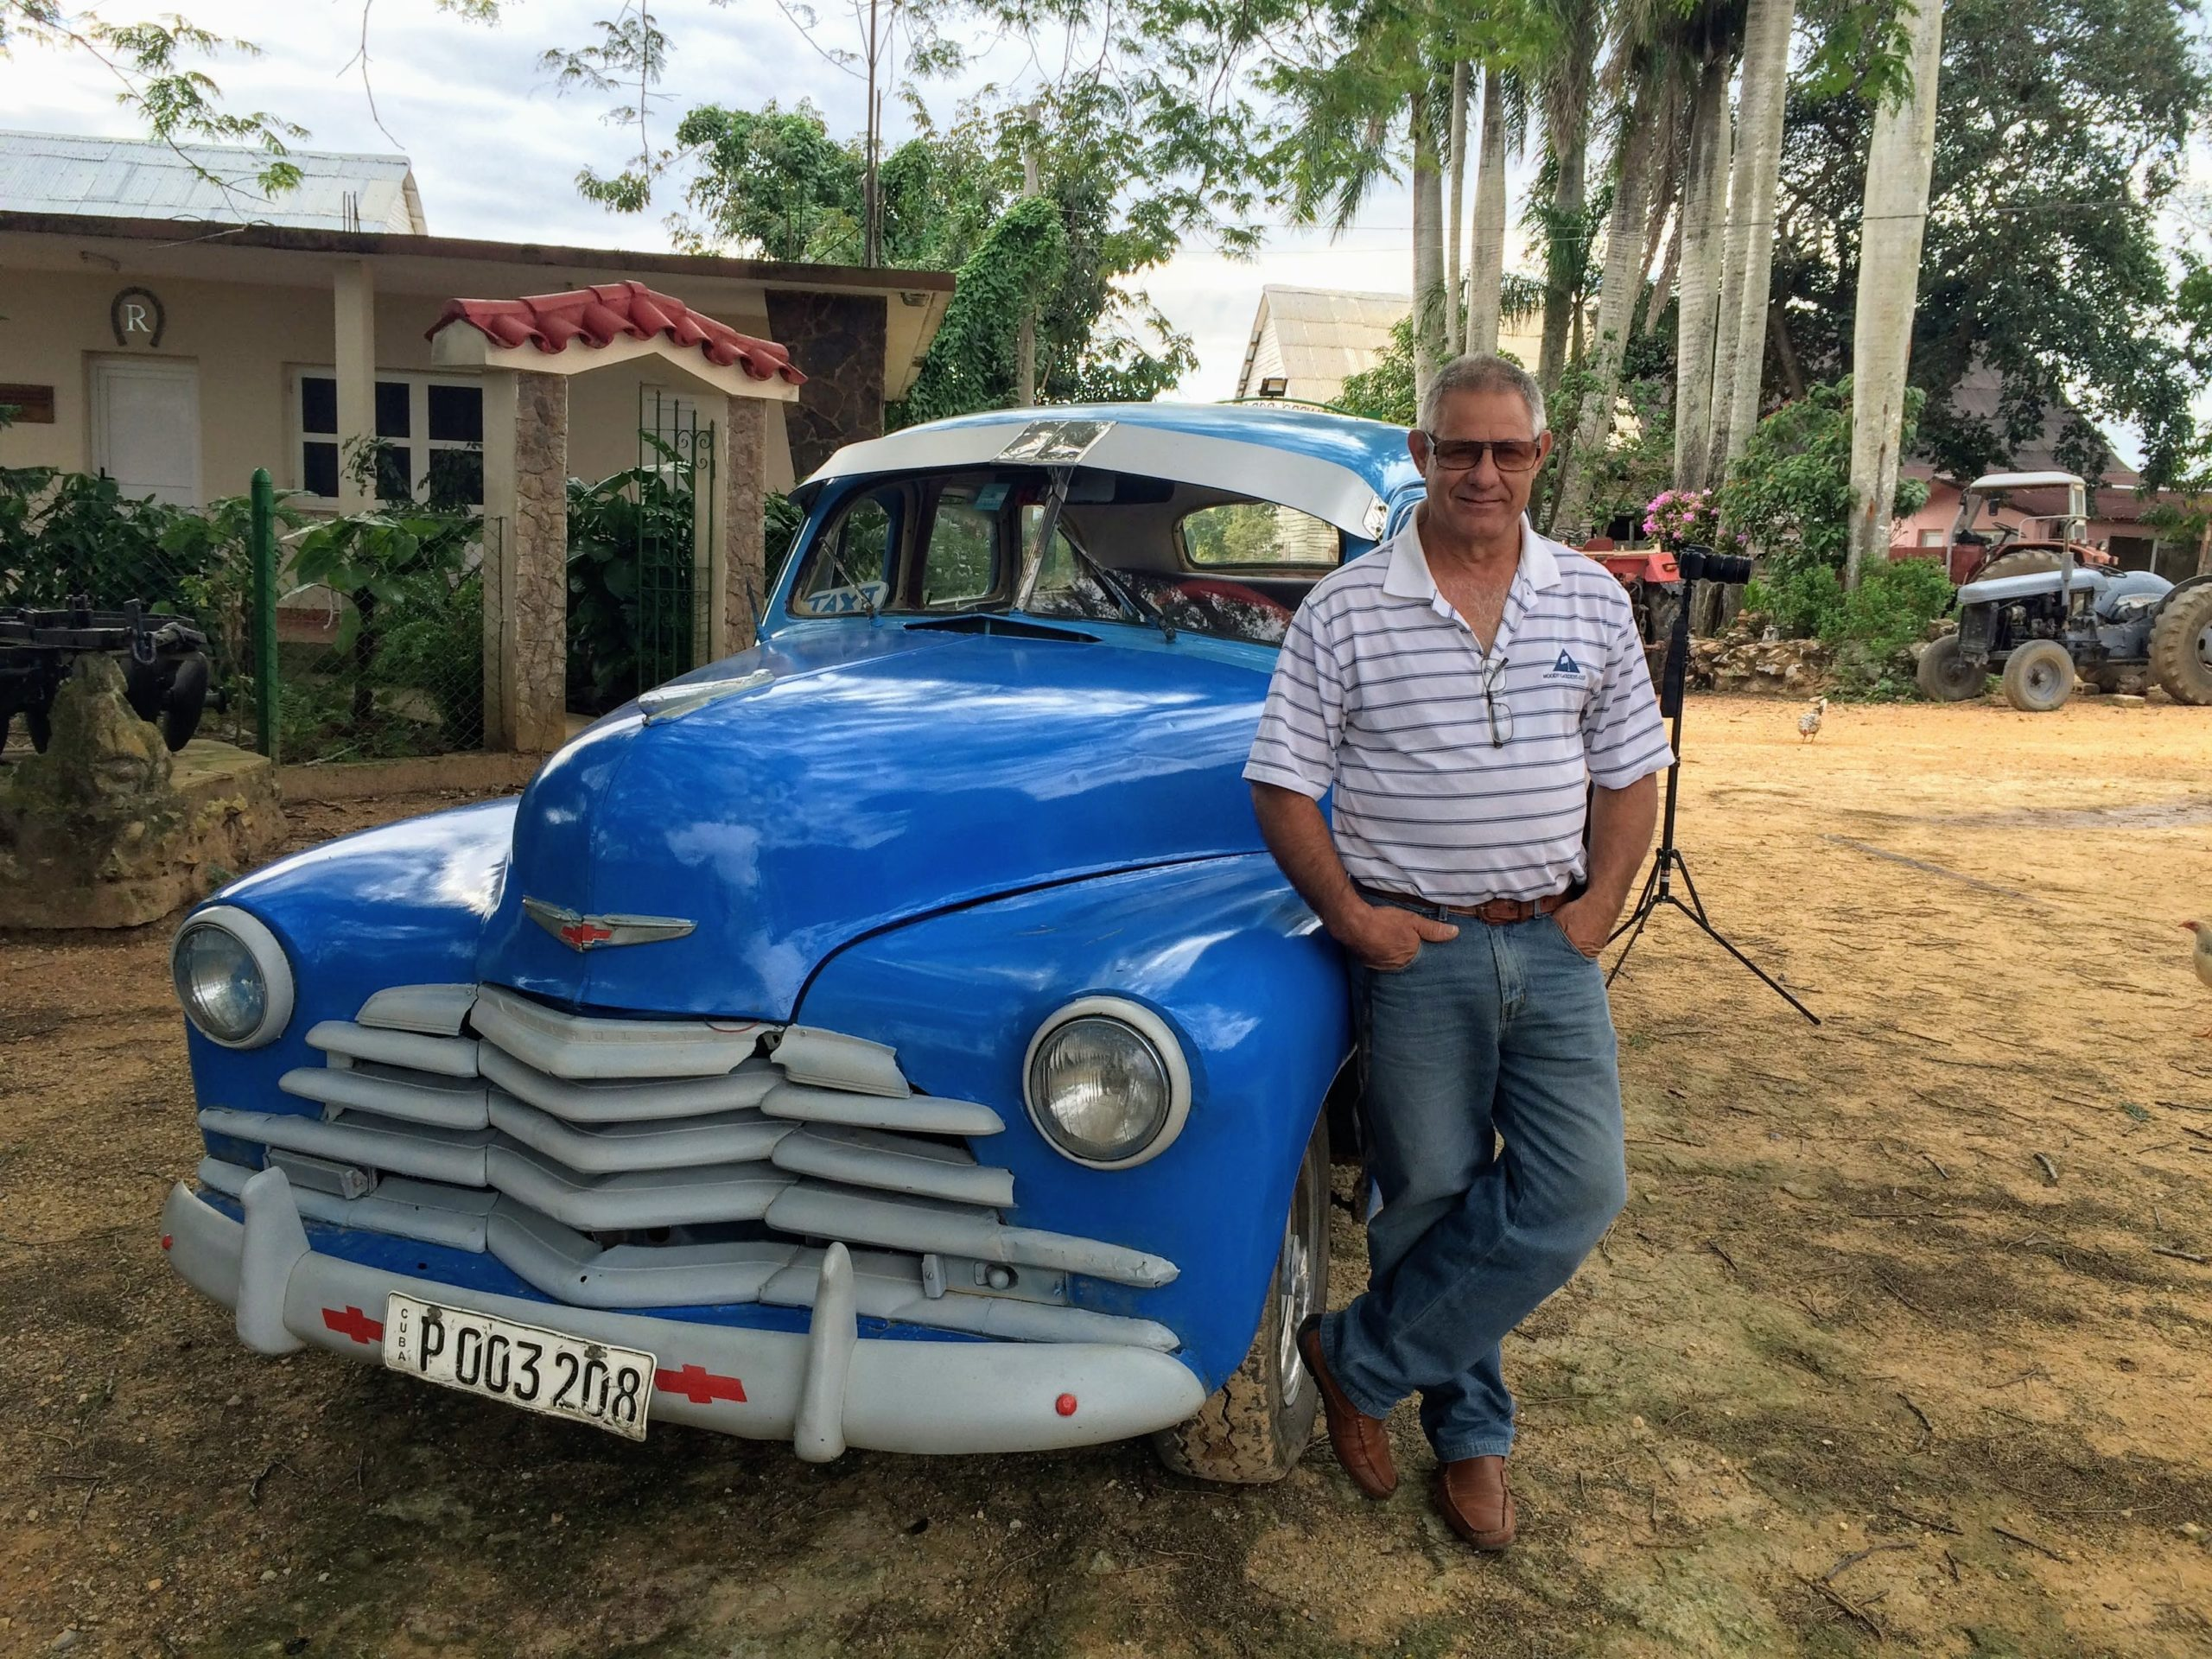 Driver Benino standing beside classic blue car in Vinales